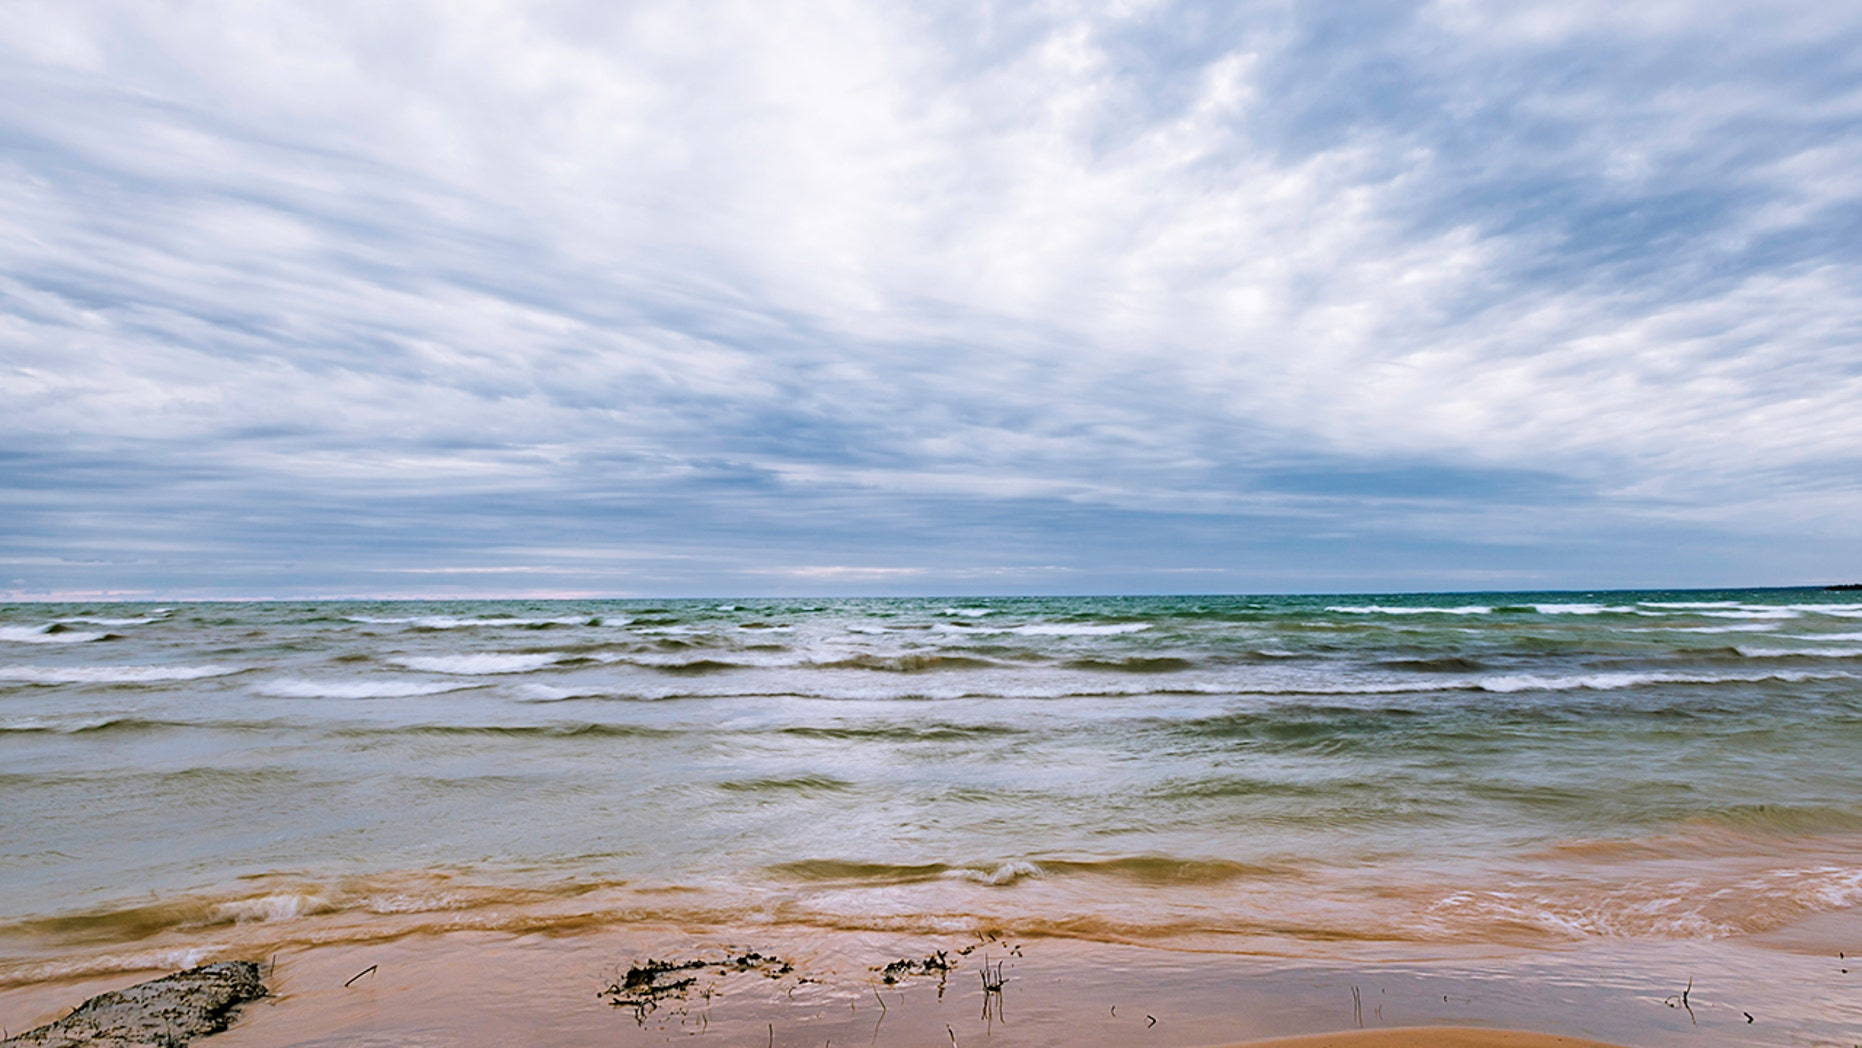 A man died and a woman remains missing Monday after they encountered hazardous conditions while swimming in Lake Michigan, officials said.